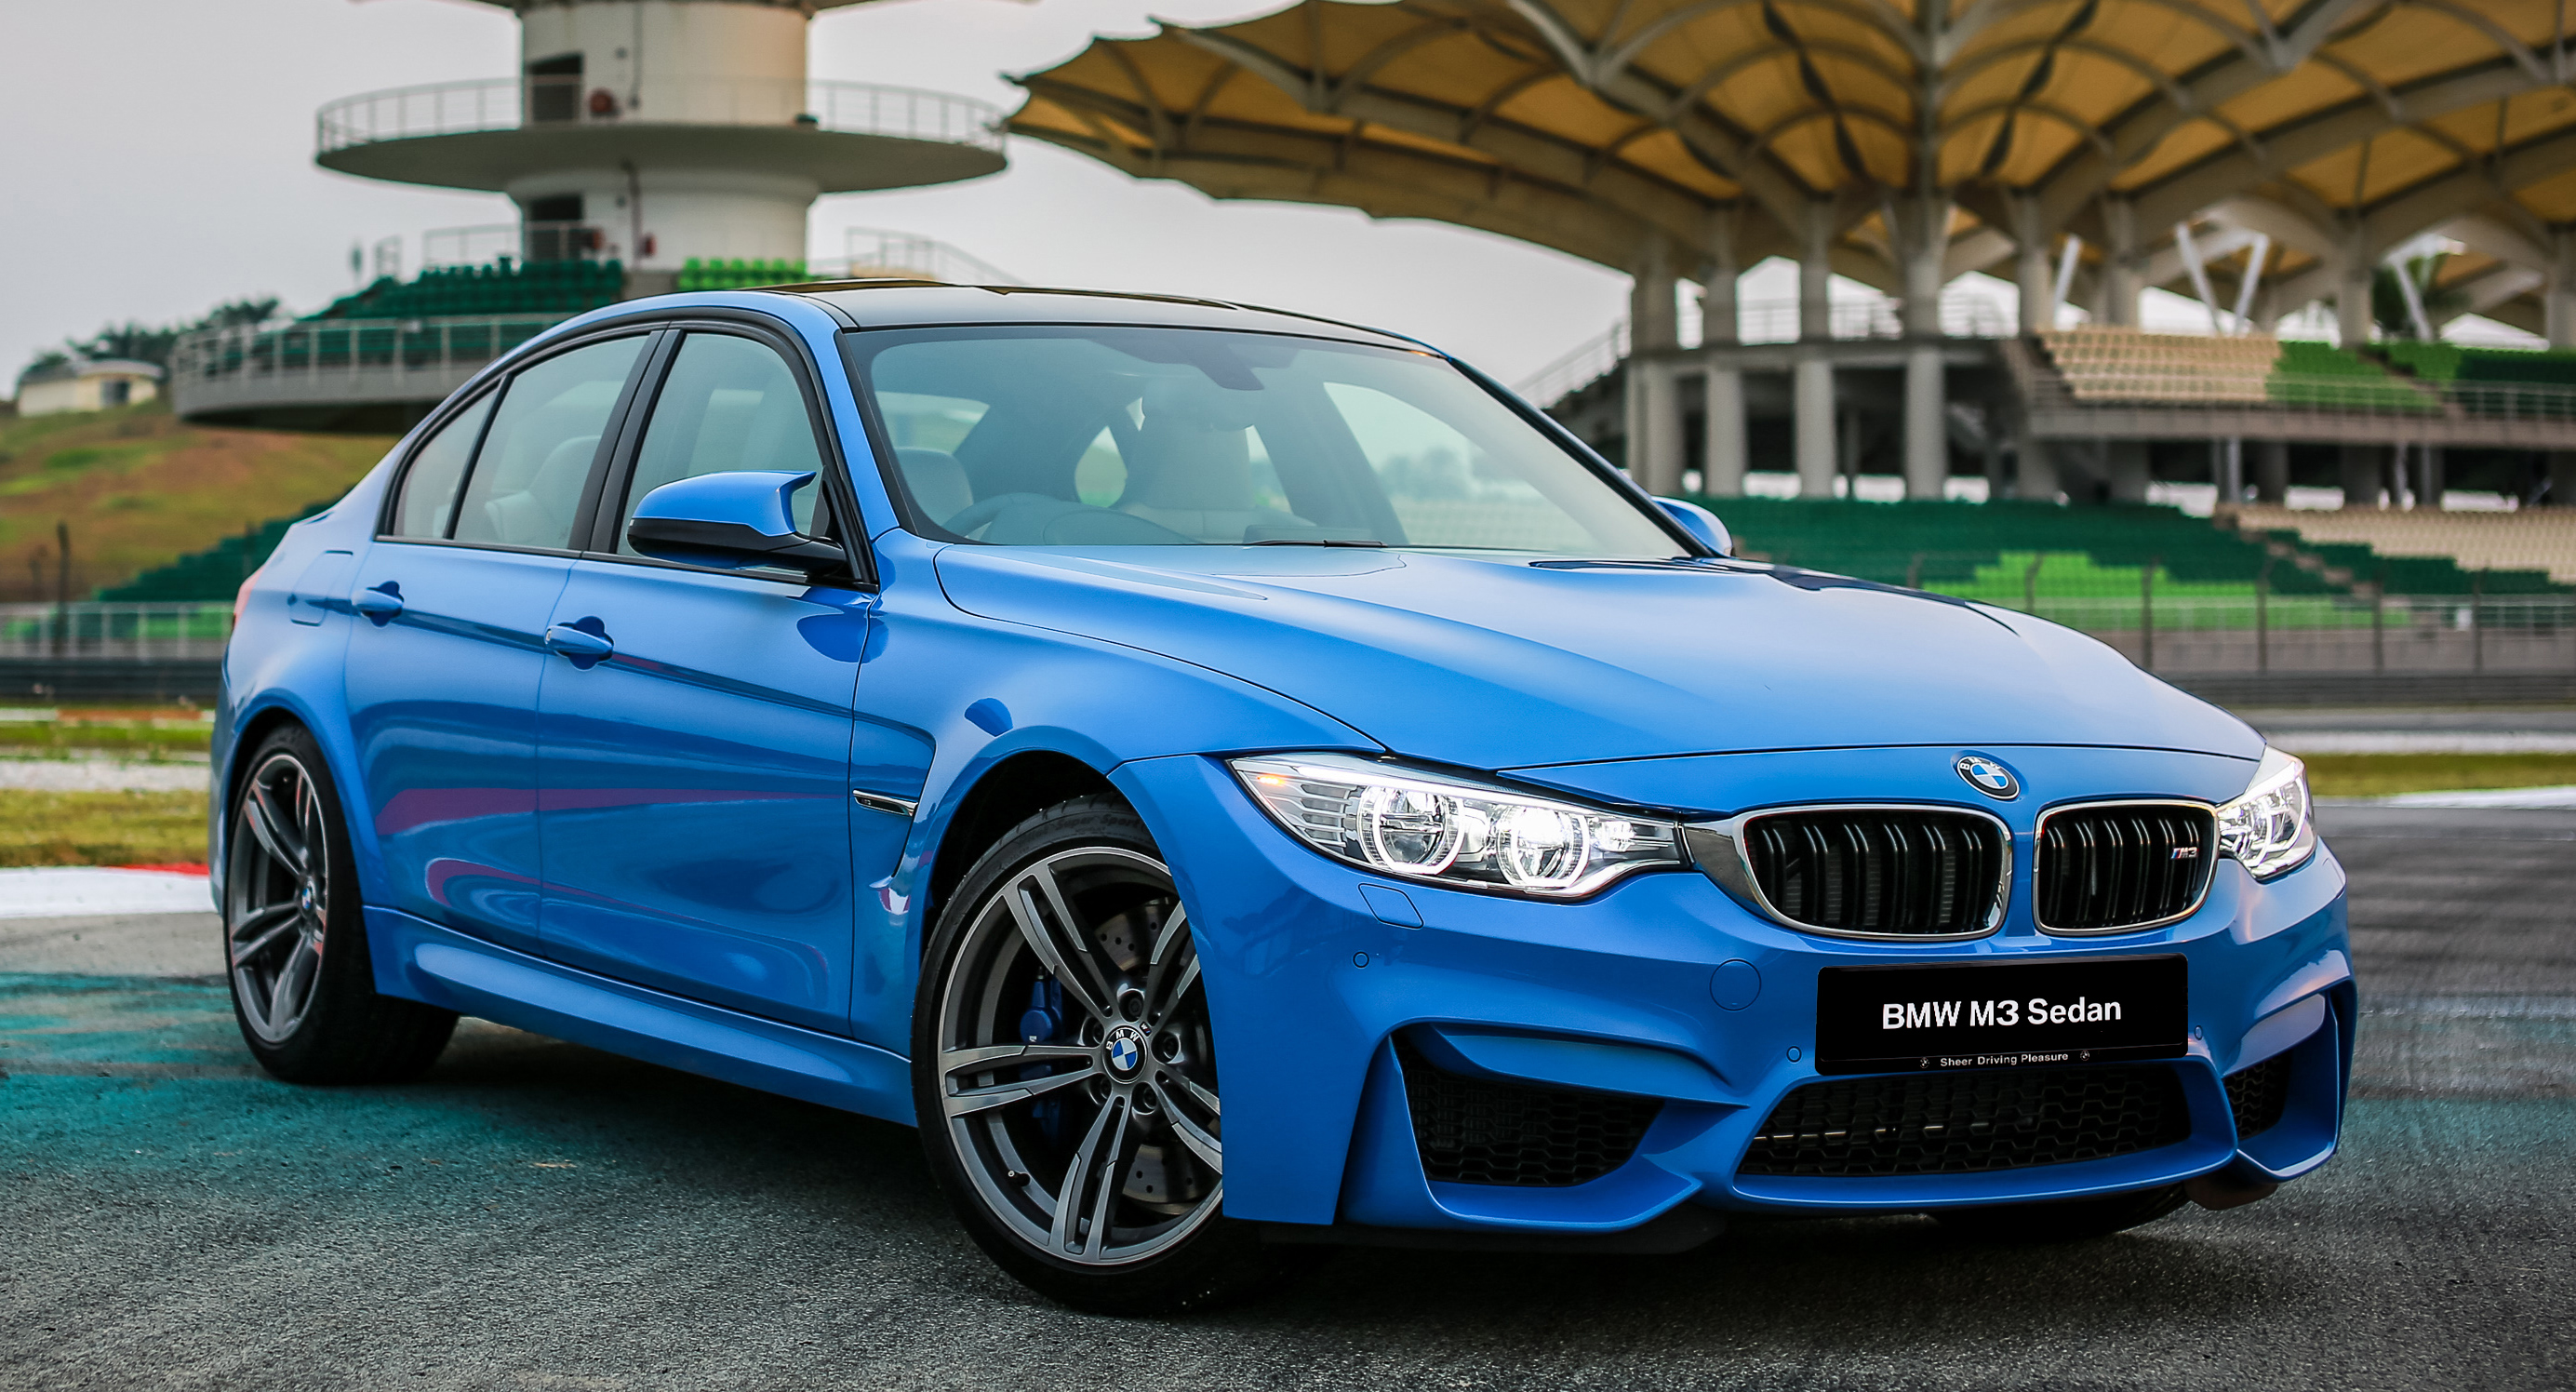 Bmw M3 Sedan >> 2014 F80 BMW M3 Sedan and F82 BMW M4 Coupe introduced in Malaysia – RM739k and RM749k Image 255962